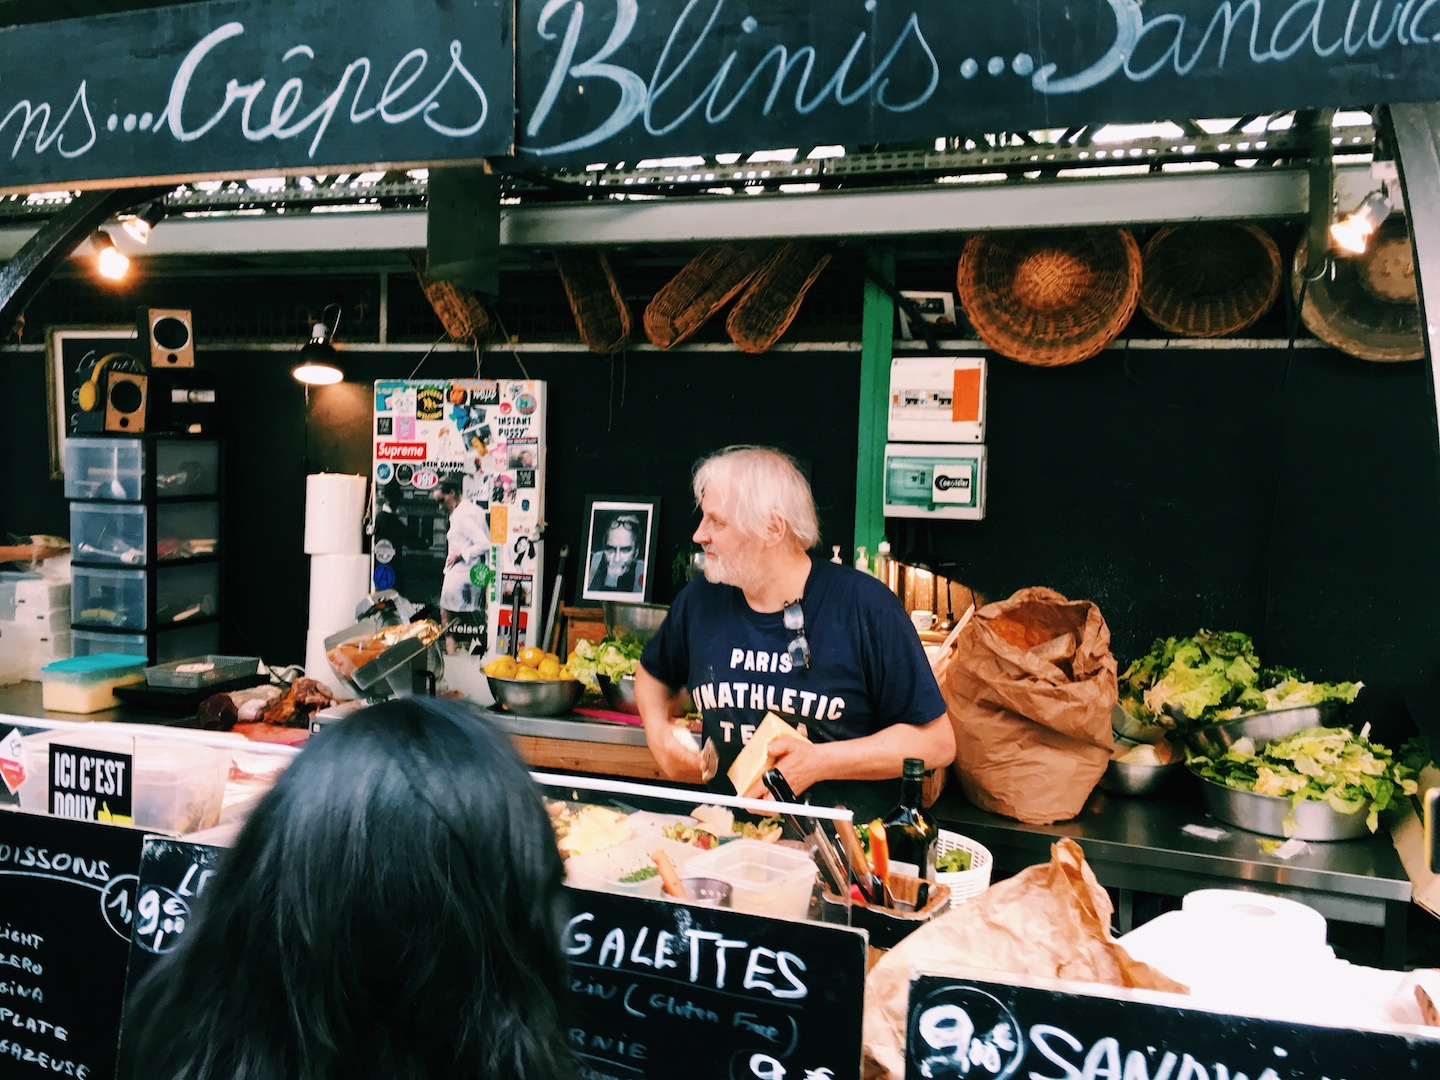 crepes-and-sandwhich-stand-le-marais-paris.JPG